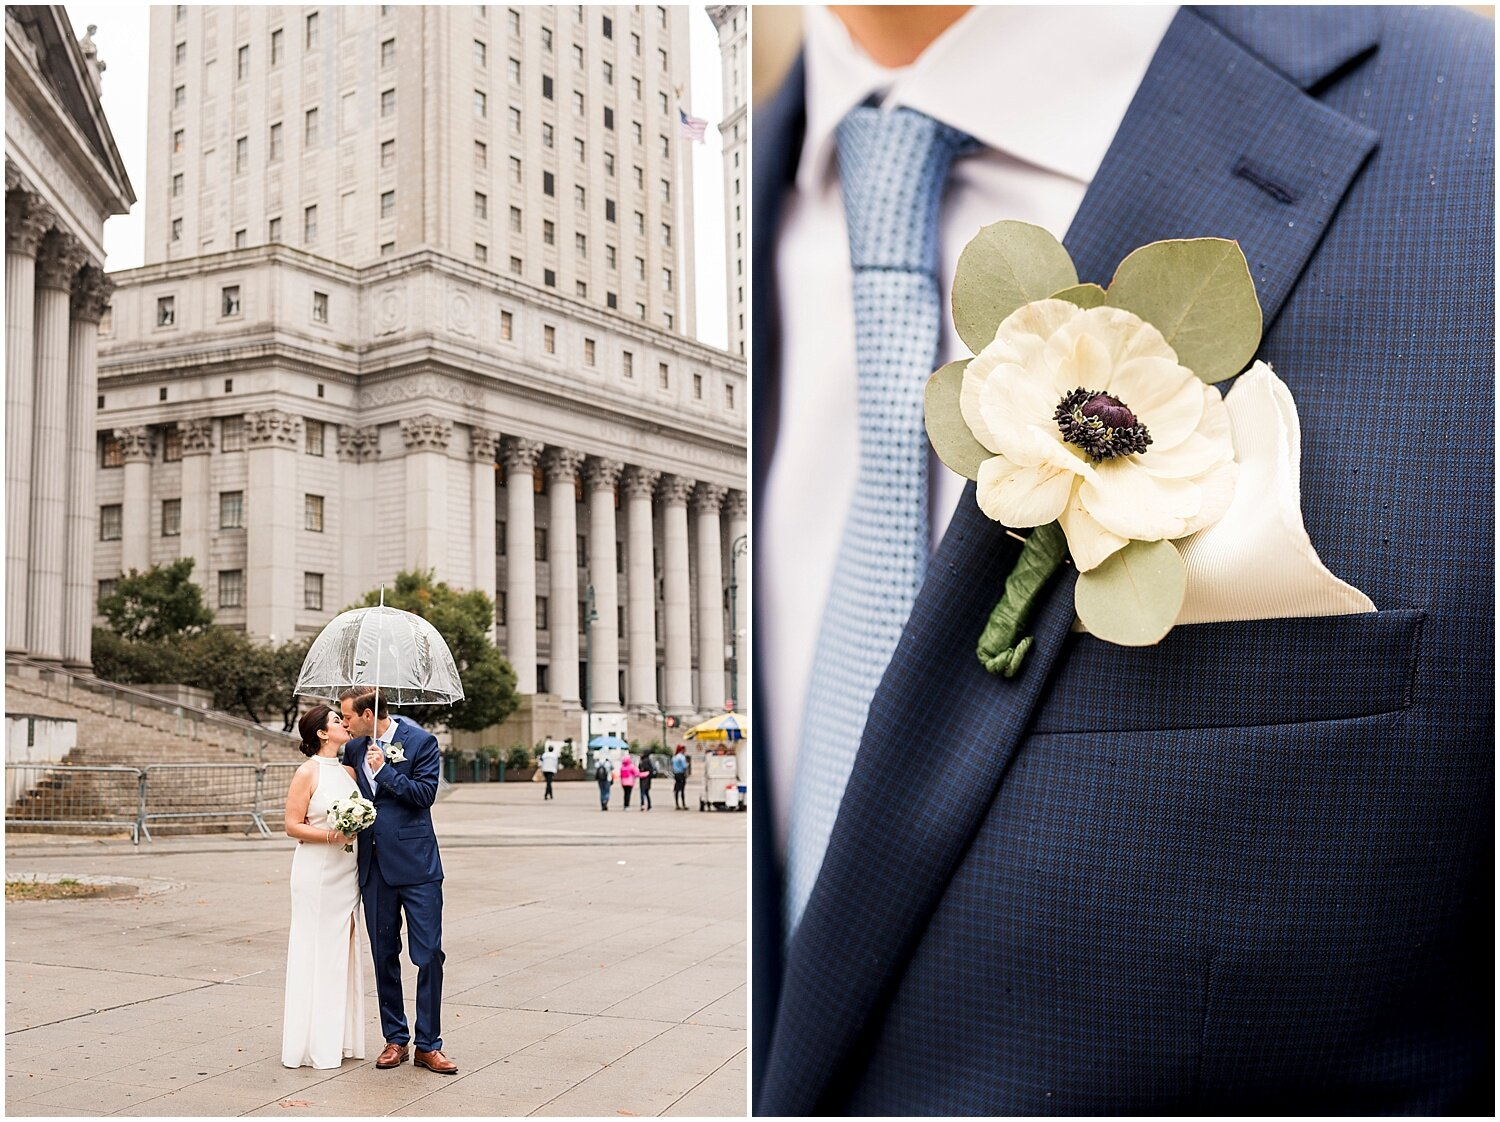 NYC-City-Hall-Courthouse-Elopement-Photographer-Apollo-Fields-024.jpg